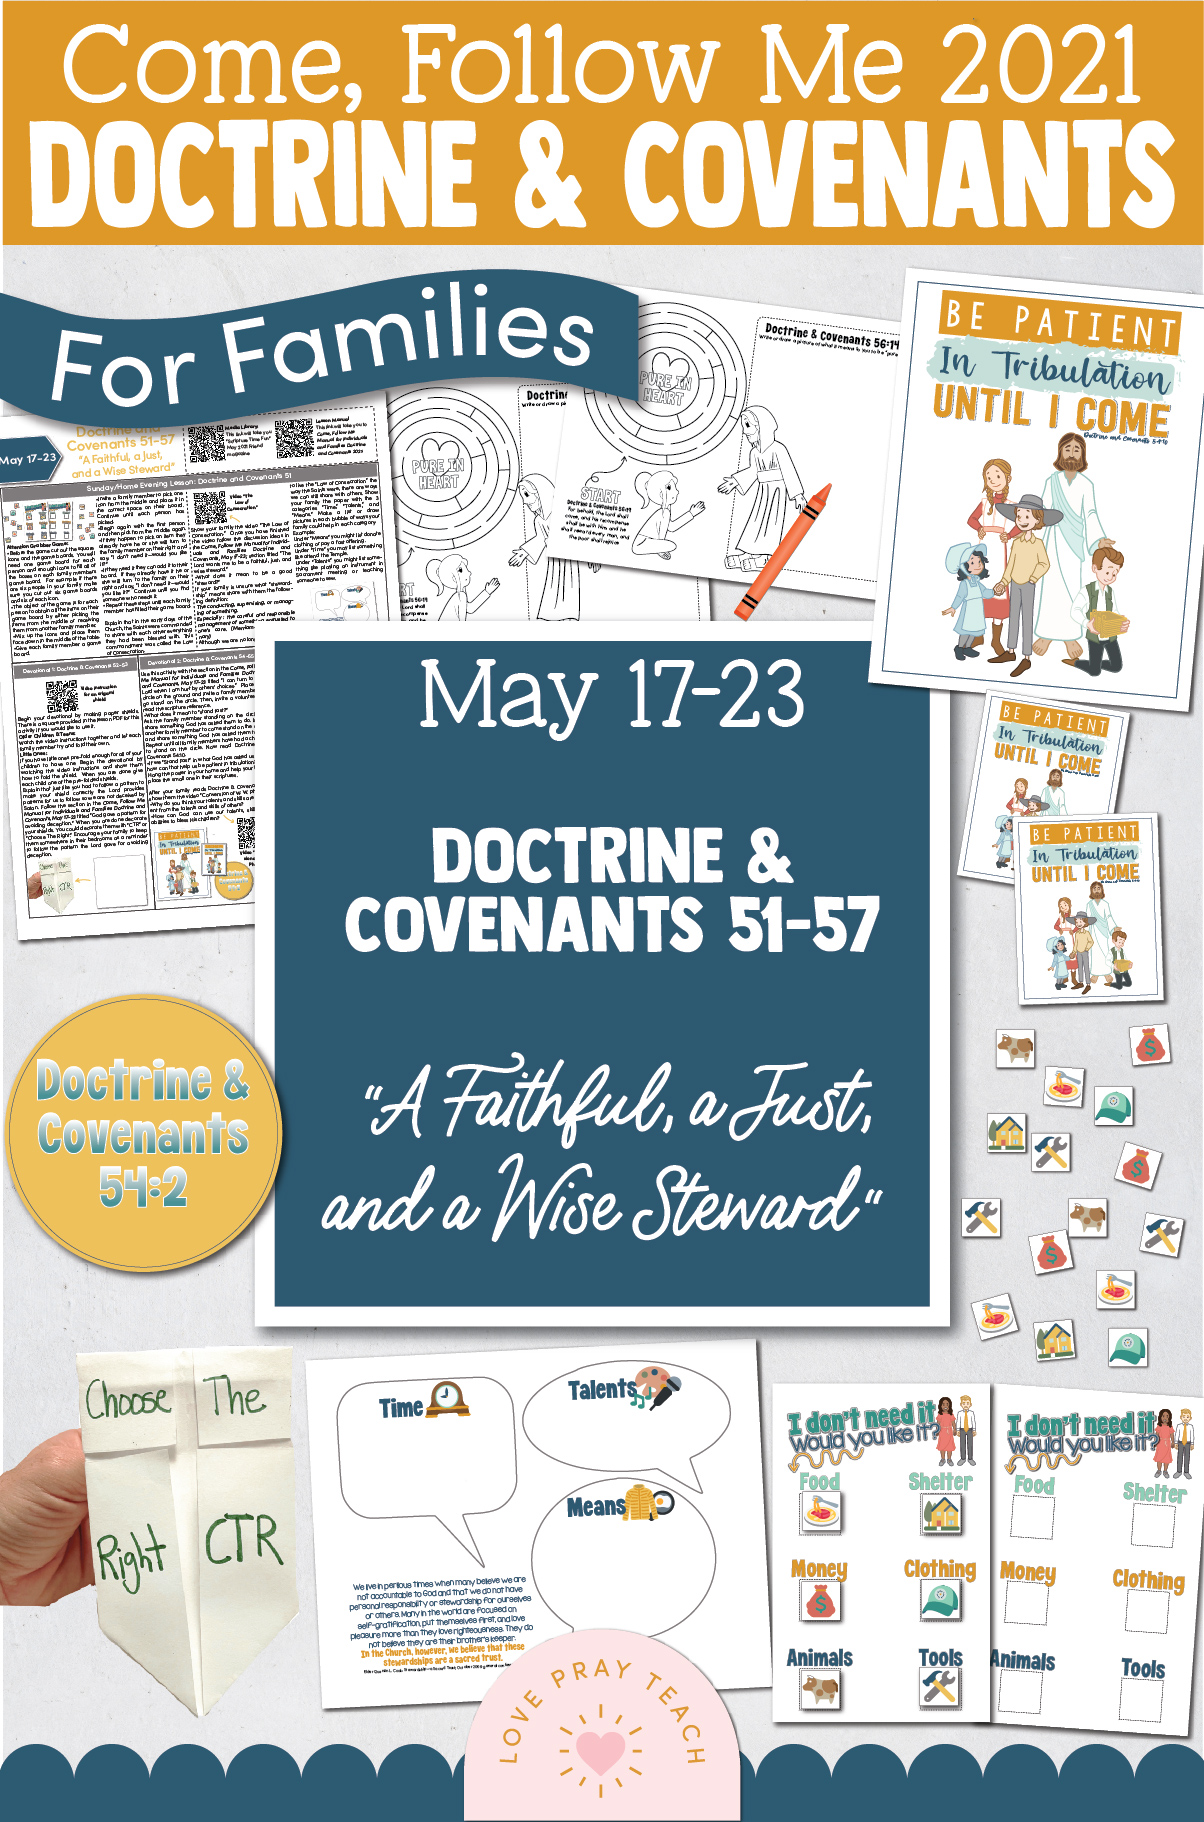 """Come, Follow Me—For Individuals and Families: Doctrine And Covenants 2021, May Week 4 Doctrine and Covenants 51-57: May 17-23, """"A Faithful, a Just, and a Wise Steward"""